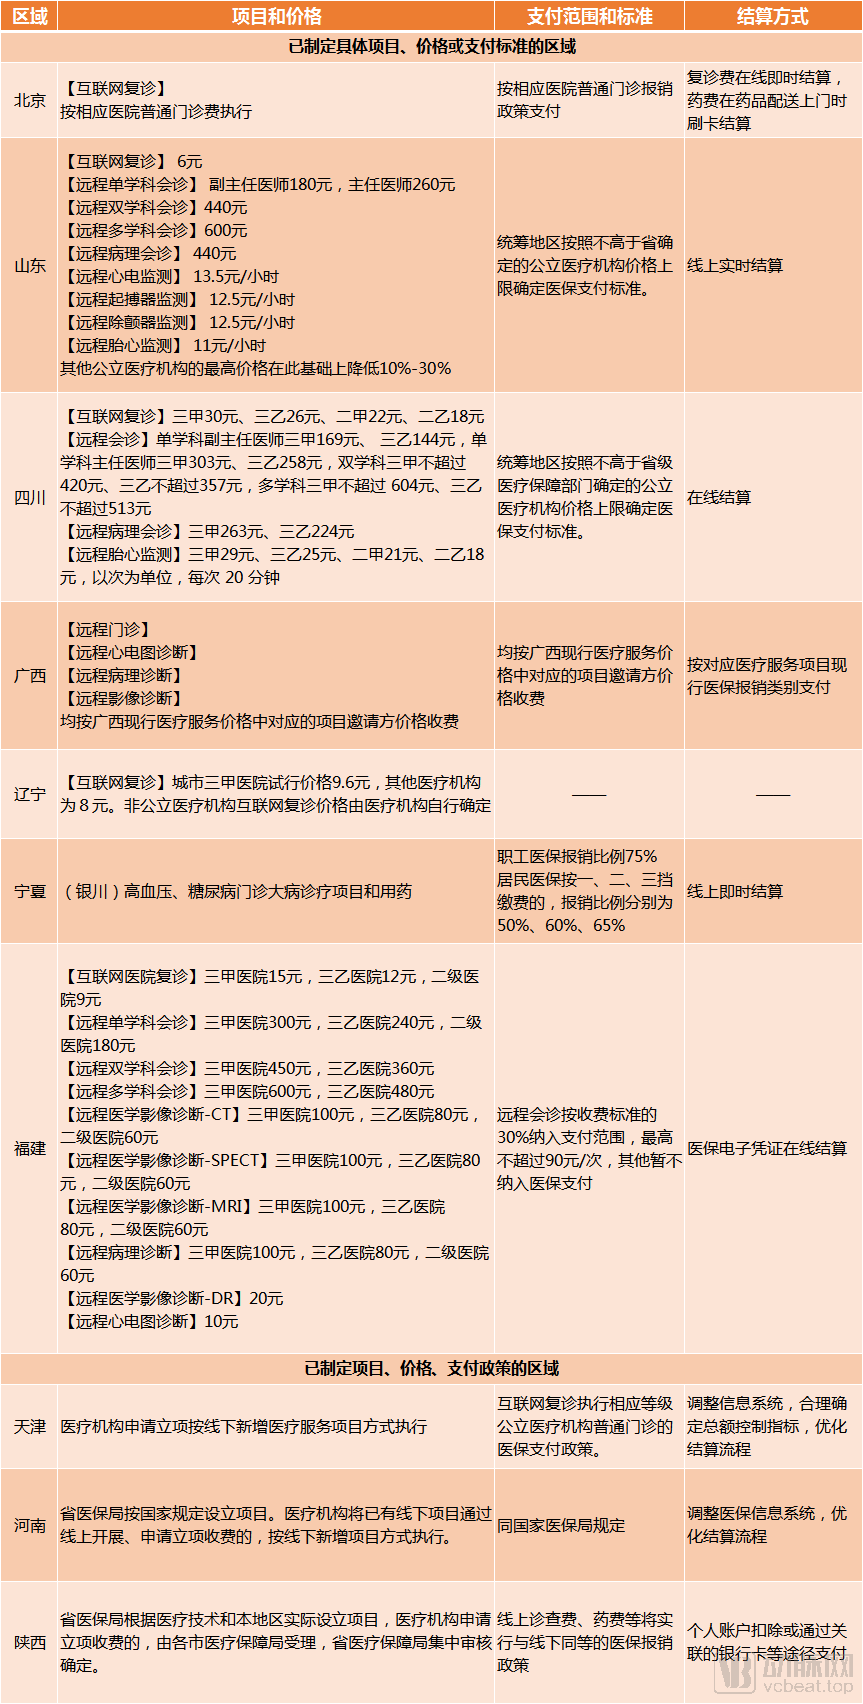 H图医保政策.png